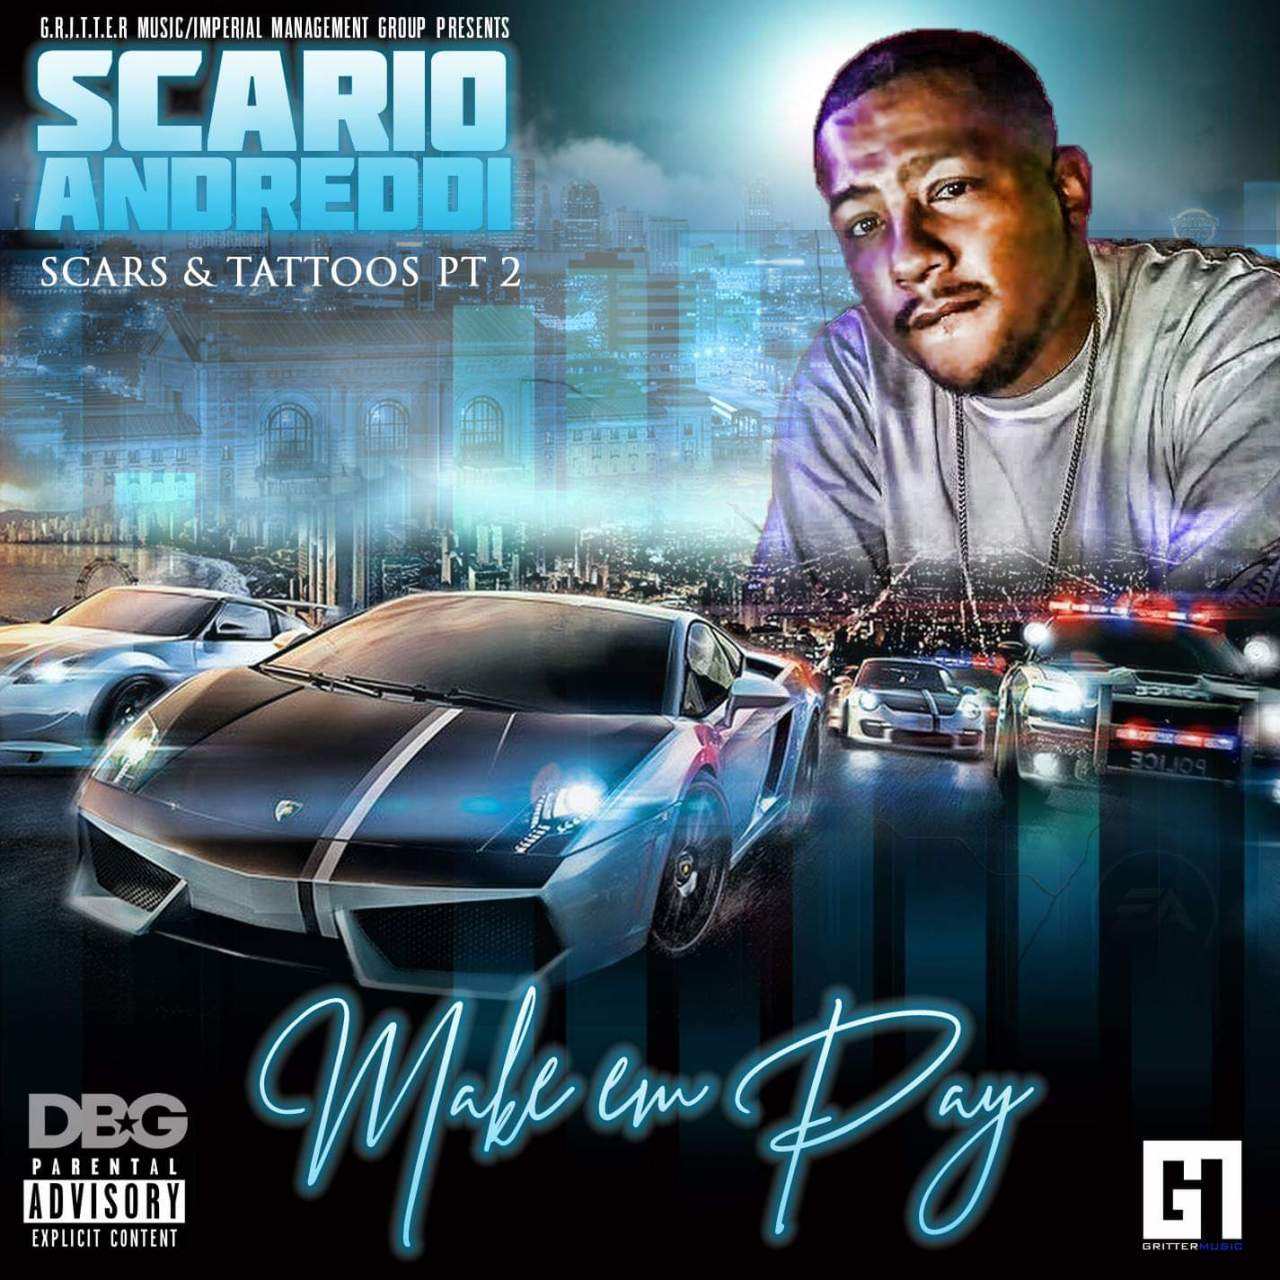 Scario Andreddi – Scars & Tattoos Part 2 (Make Em Pay)